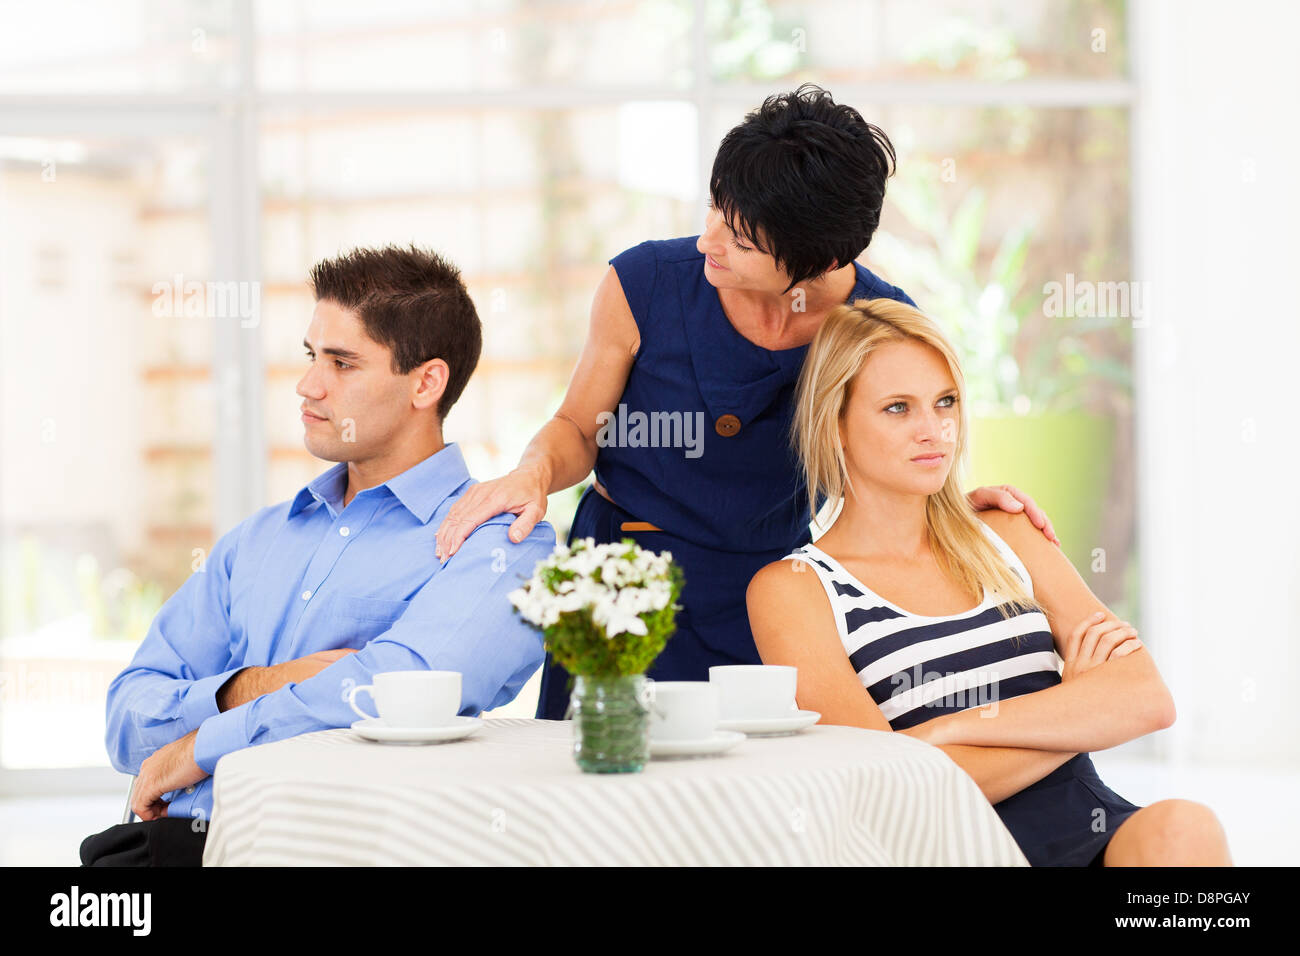 caring mother reconciling fighting young couple - Stock Image